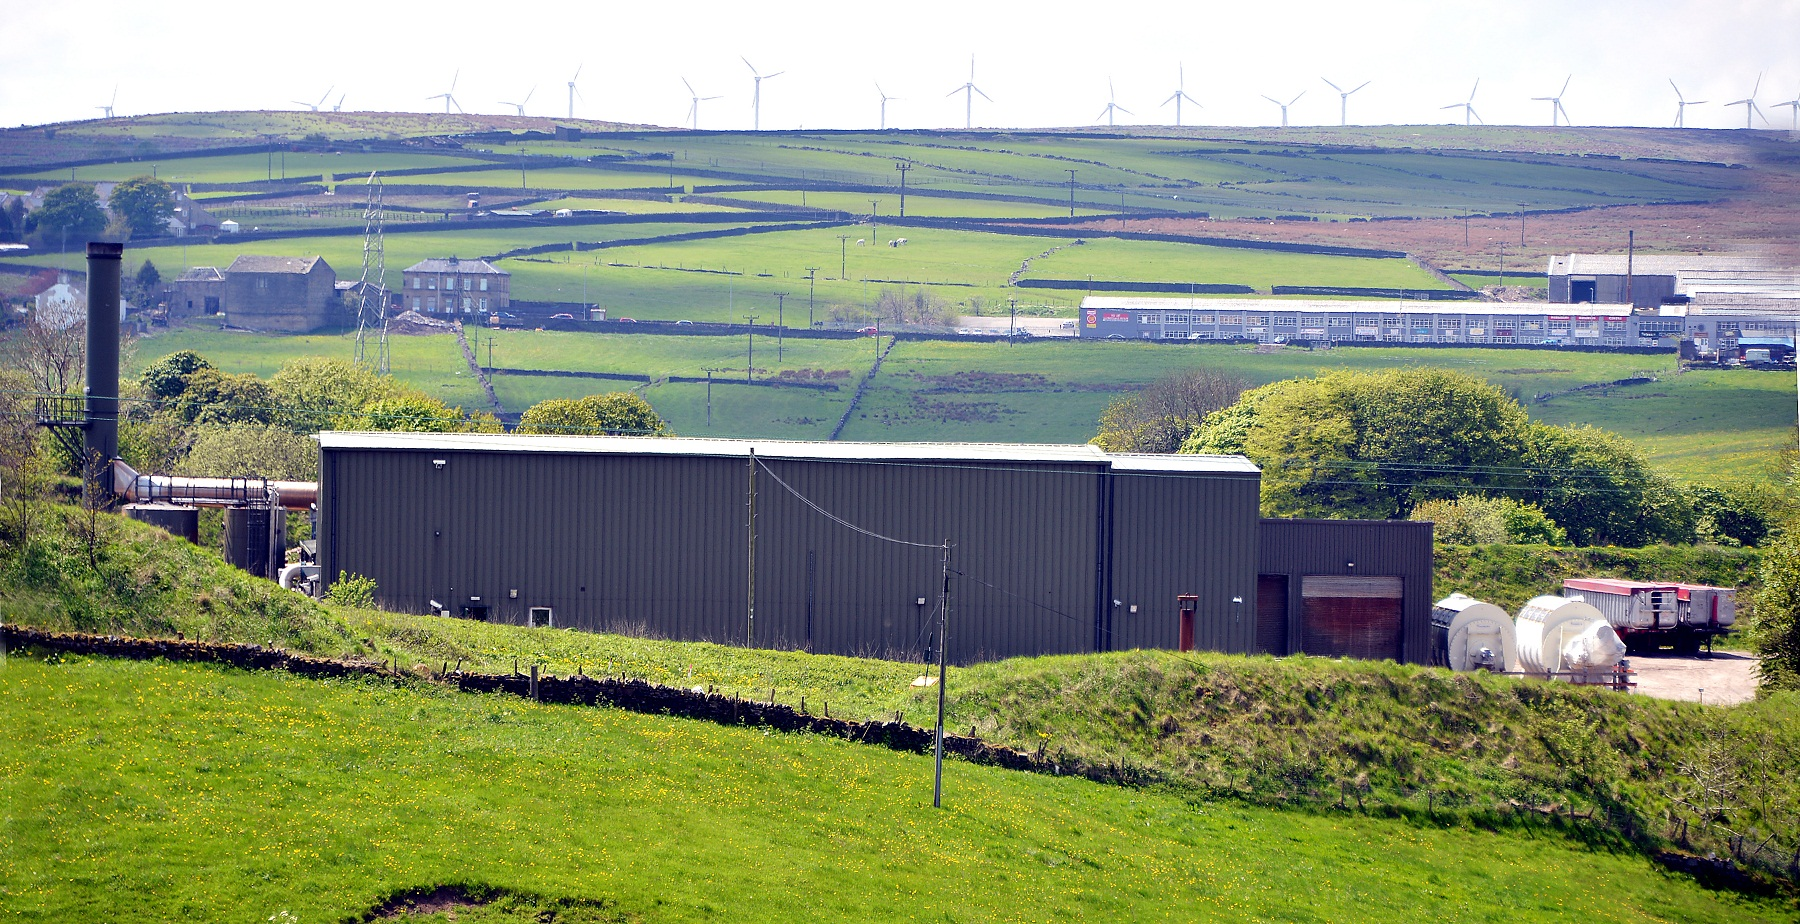 The Omega Proteins site in Denholme, which has been the subject of a successful planning appeal by its owners